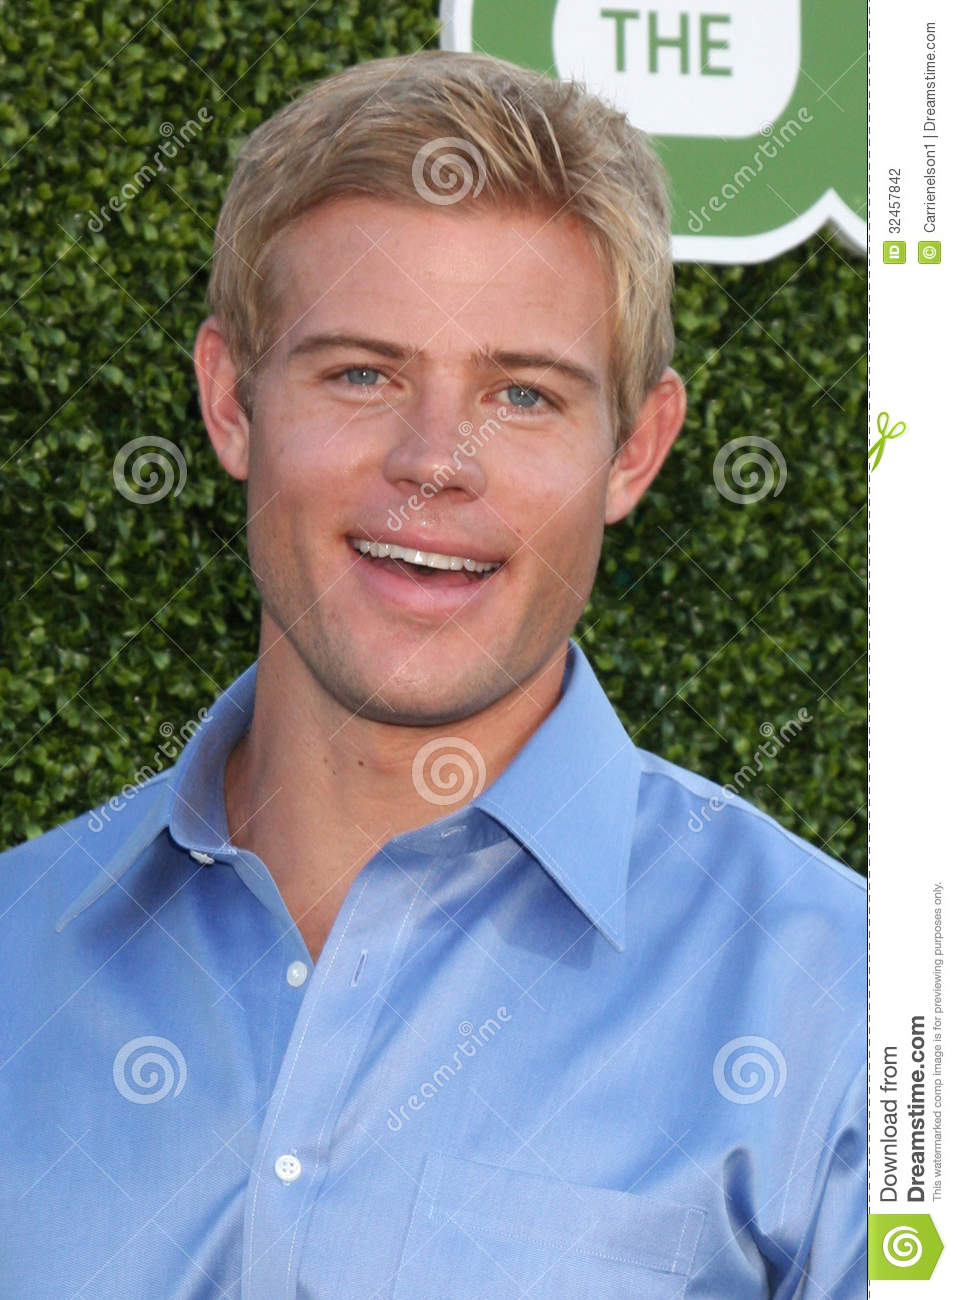 trevor donovan the client listtrevor donovan the client list, trevor donovan wiki, trevor donovan interview, trevor donovan gif, trevor donovan instagram, trevor donovan, trevor donovan twitter, тревор донован, trevor donovan imdb, trevor donovan 2015, тревор донован личная жизнь, trevor donovan 90210, trevor donovan and alan ritchson, trevor donovan wife, trevor donovan net worth, trevor donovan gay or not, trevor donovan bio, trevor donovan dating, trevor donovan age, trevor donovan and his girlfriend